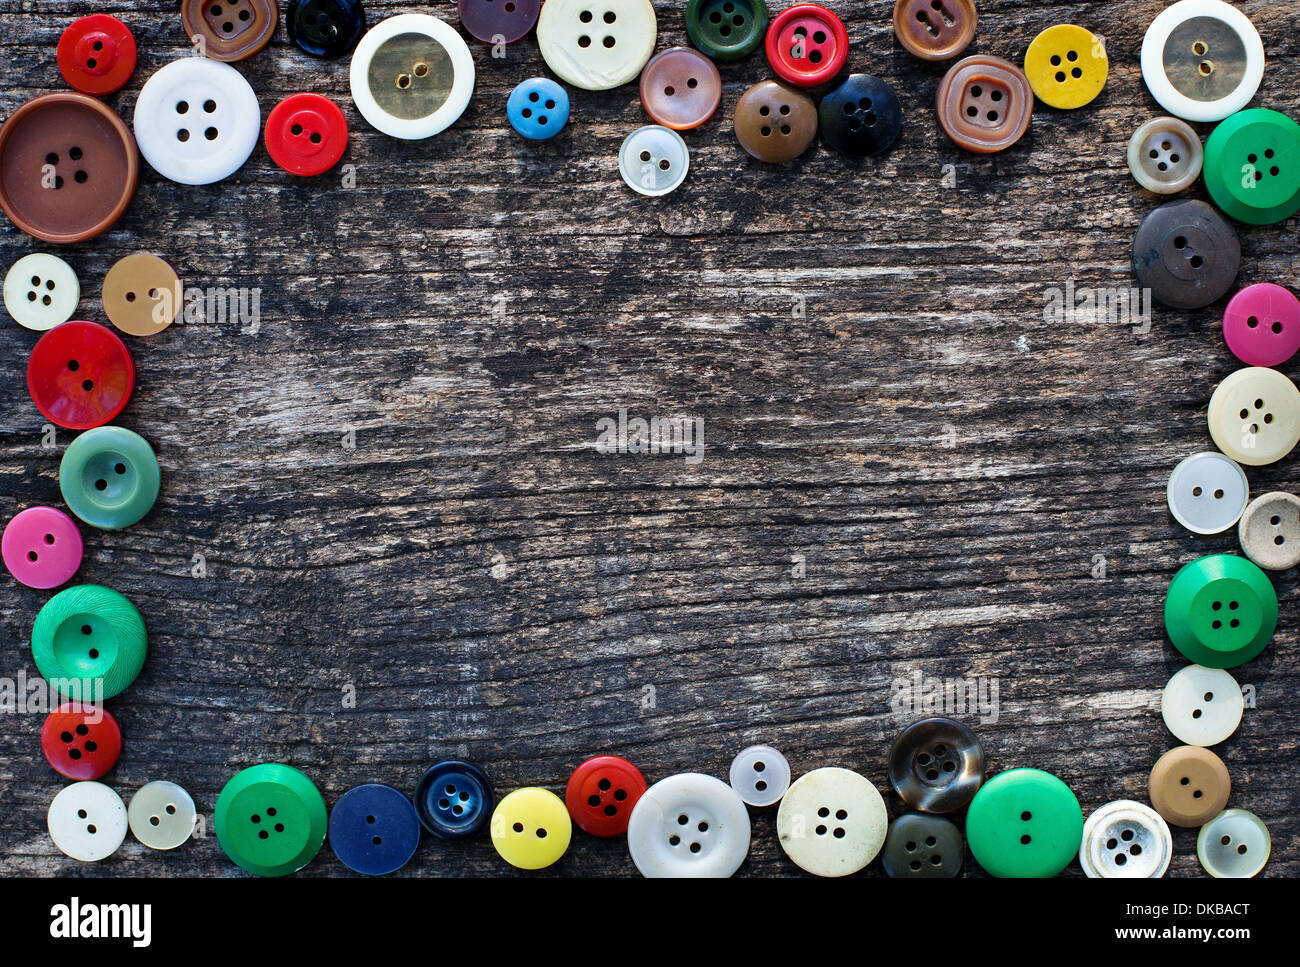 sewing background with frame from buttons - Stock Image